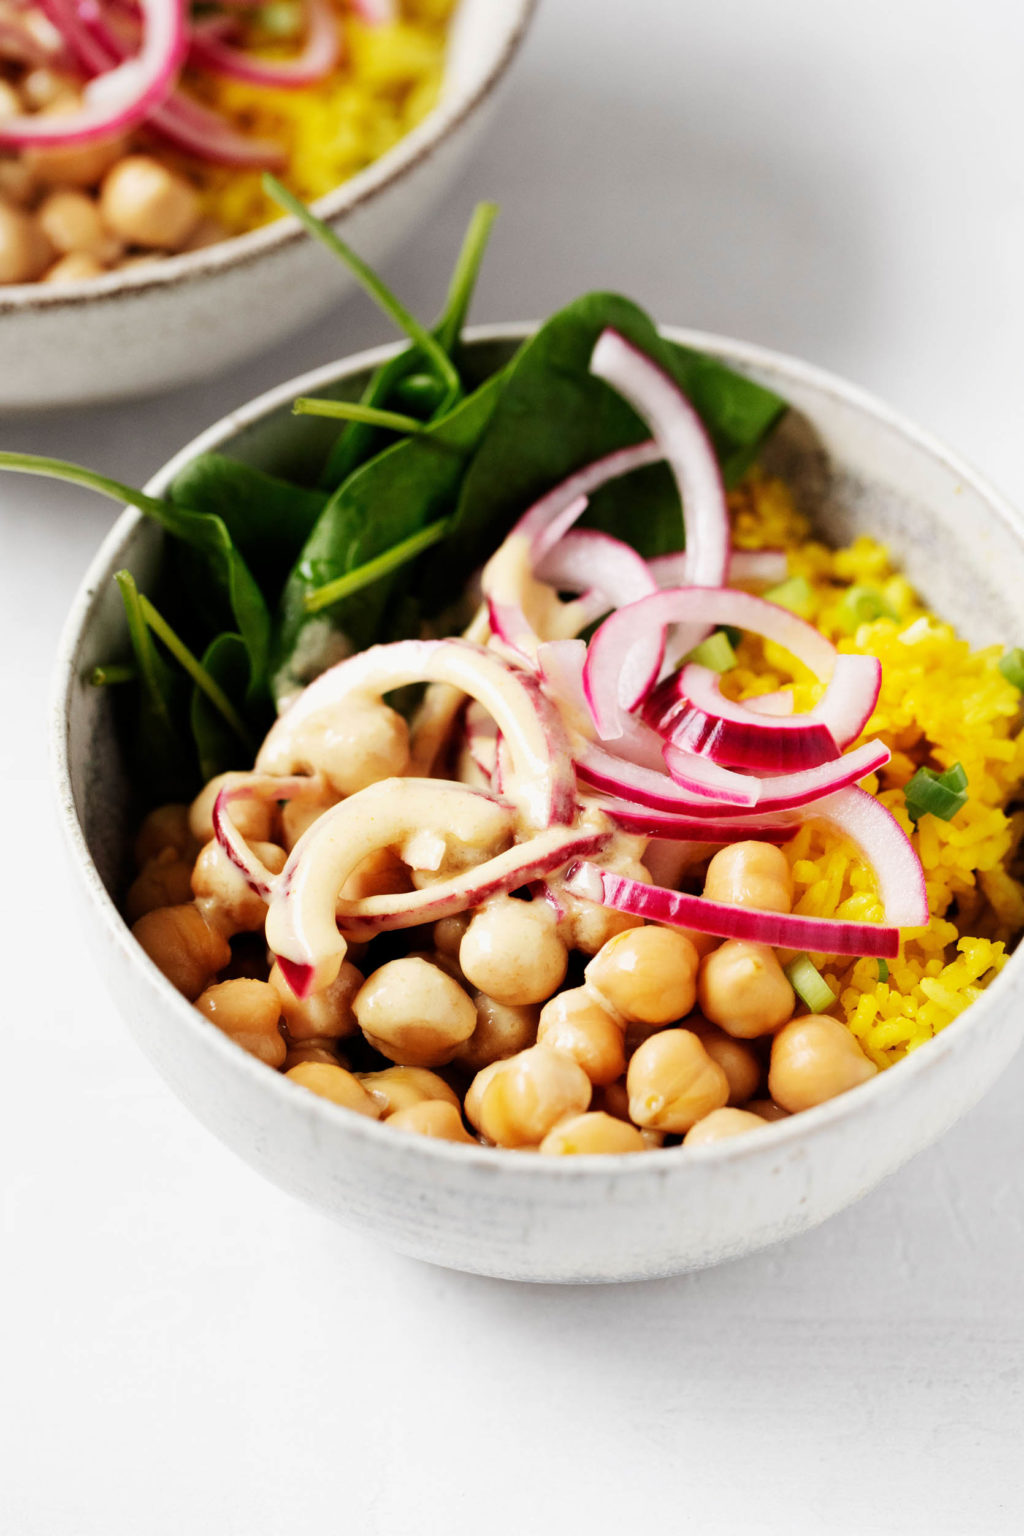 A zoomed in image of a white bowl that has been piled with spinach, onions, chickpeas, and yellow turmeric-spiced rice.